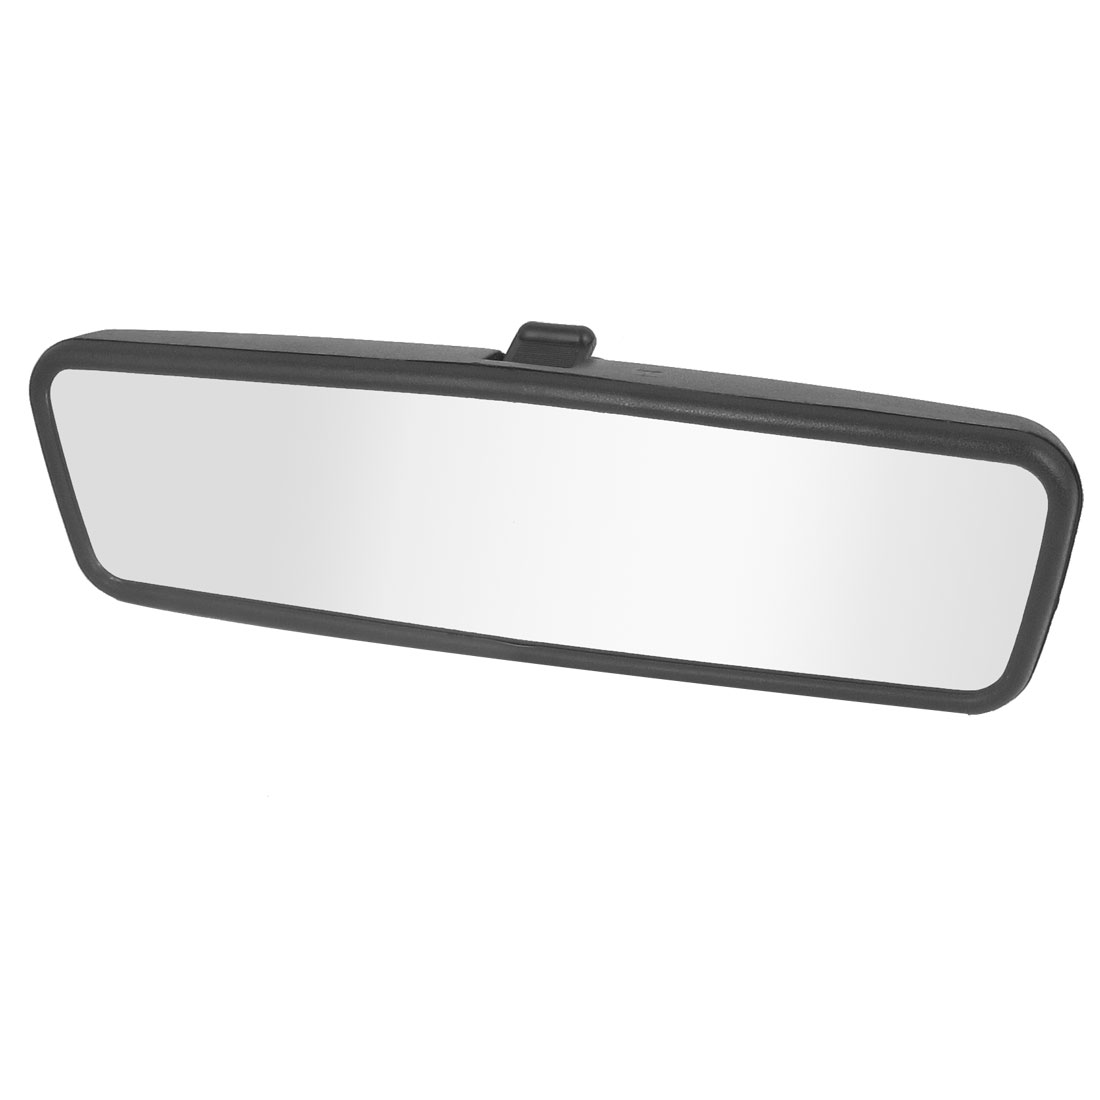 Auto Car Black Plastic Casing Flat Glass Interior Rearview Rear View Mirror for Volkswagen